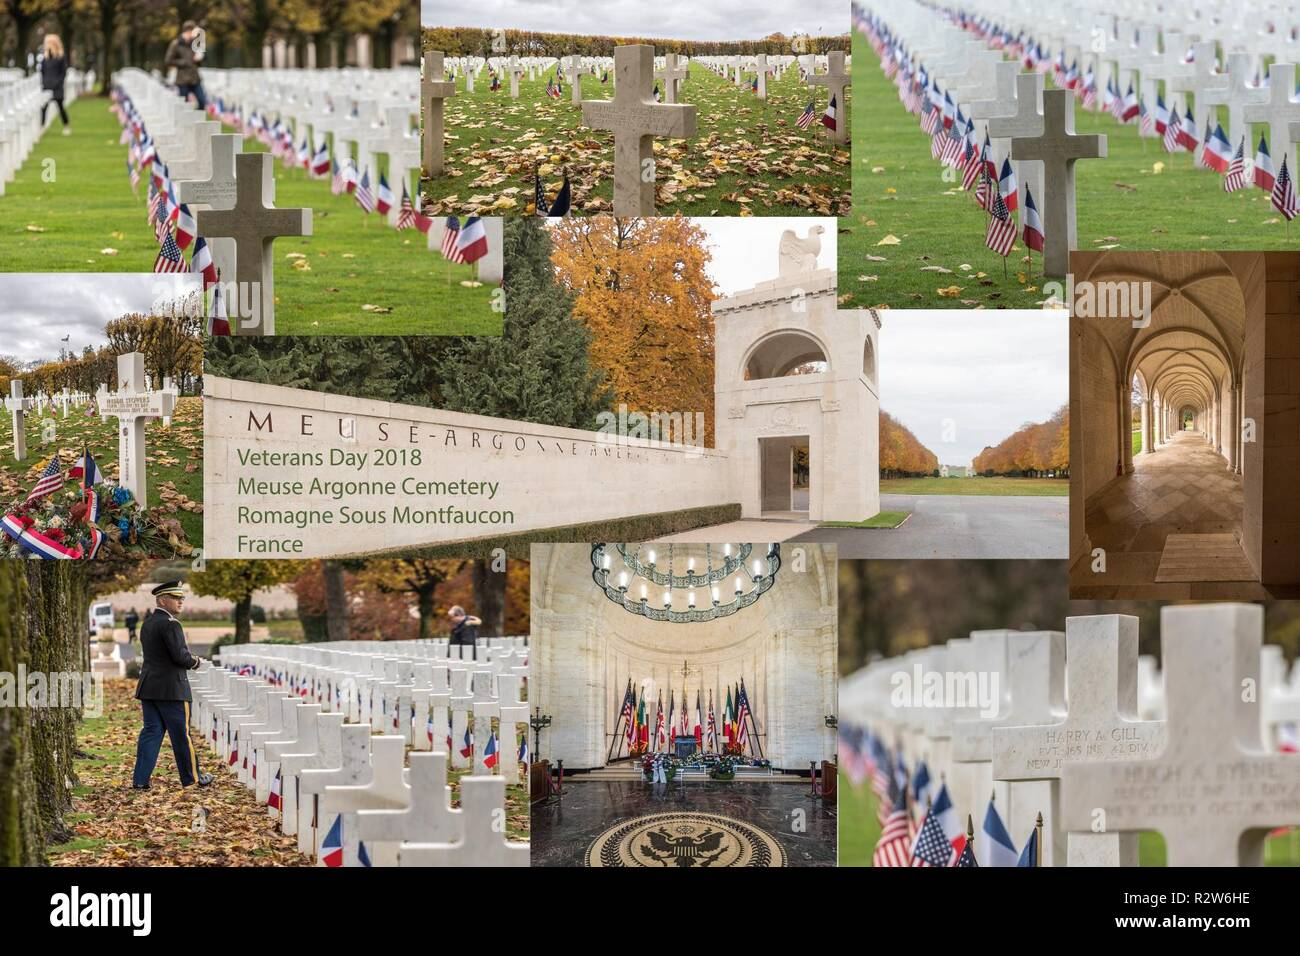 Veterans Day at the Meuse-Argonne American Cemetery, 11 November, 2018. This day also marks the centennial of the end of World War I.  Within the Meuse-Argonne American Cemetery and Memorial in France, which covers 130.5 acres, rest the largest number of our military dead in Europe, a total of 14,246. Most of those buried here lost their lives during the Meuse-Argonne Offensive of World War I - Stock Image